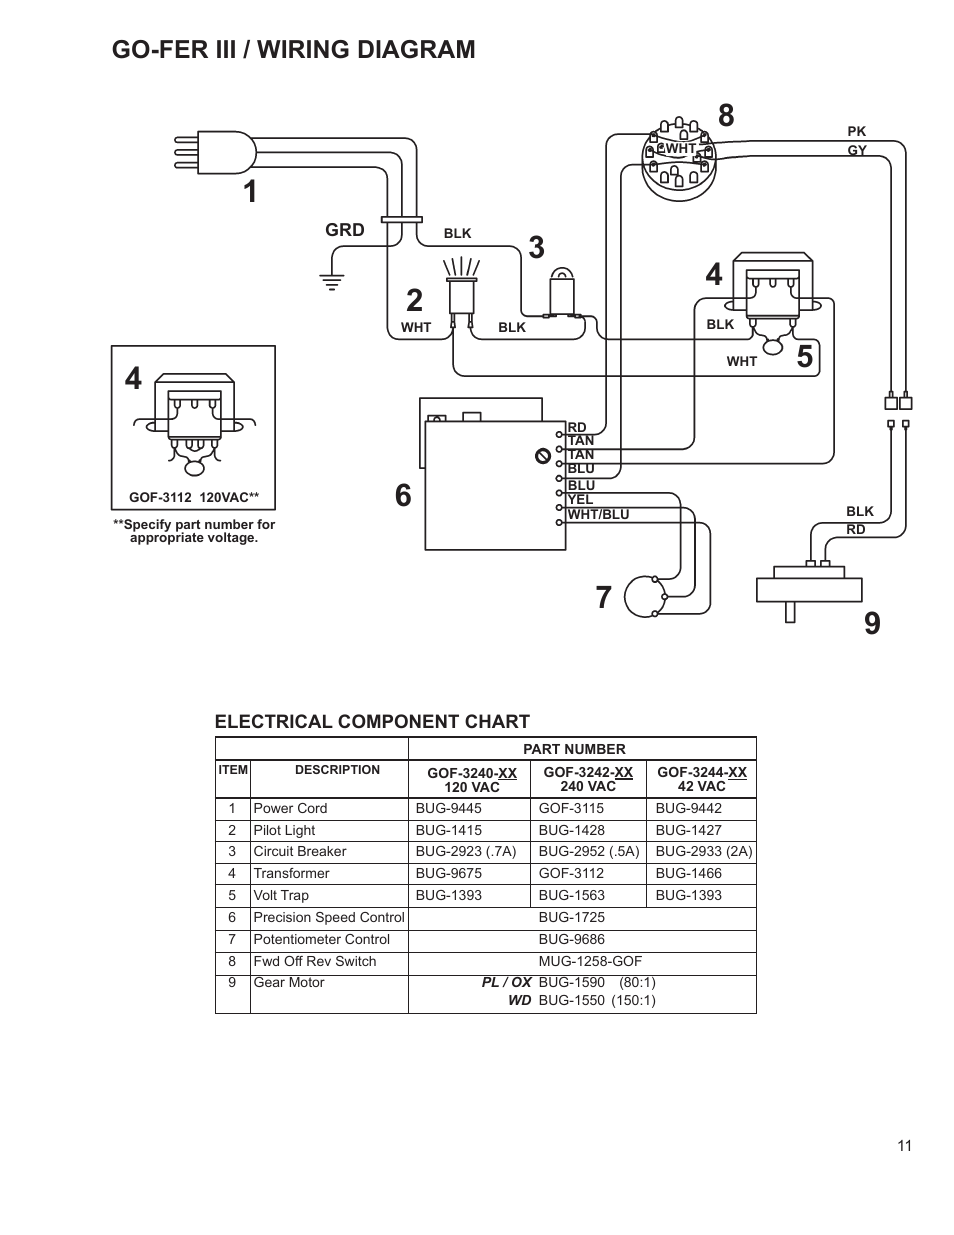 hight resolution of go fer iii wiring diagram bug o systems go fer iii ox user manual page 11 22